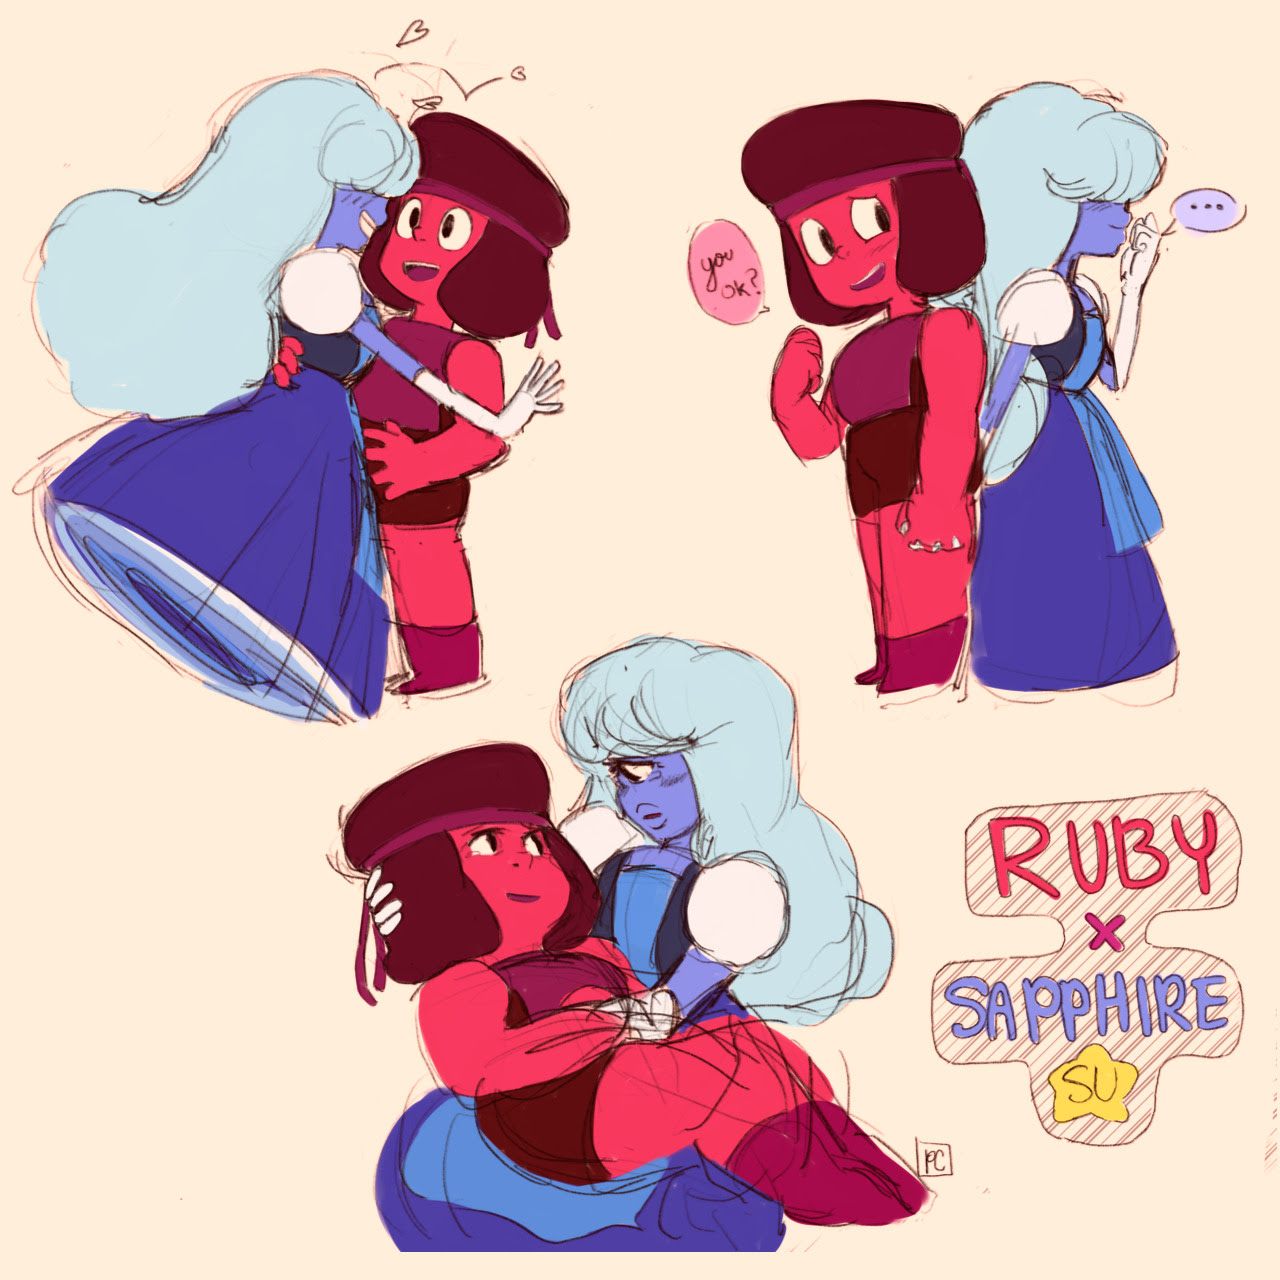 sketched some rupphires today ❤️💙